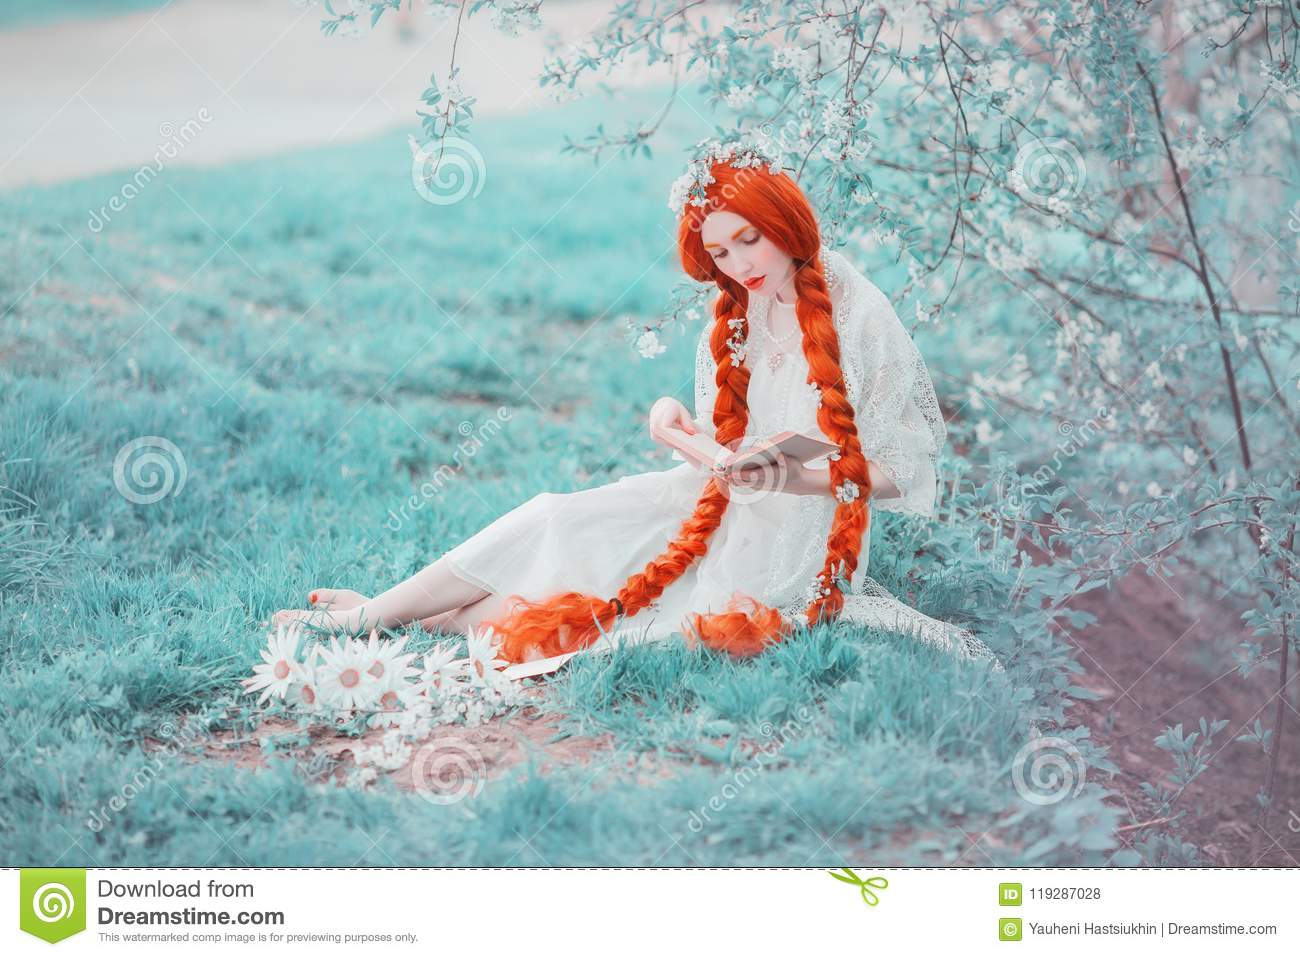 Young unusual redhead renaissance girl with curly hair braided in plait on a spring background. Beautiful woman with pale skin